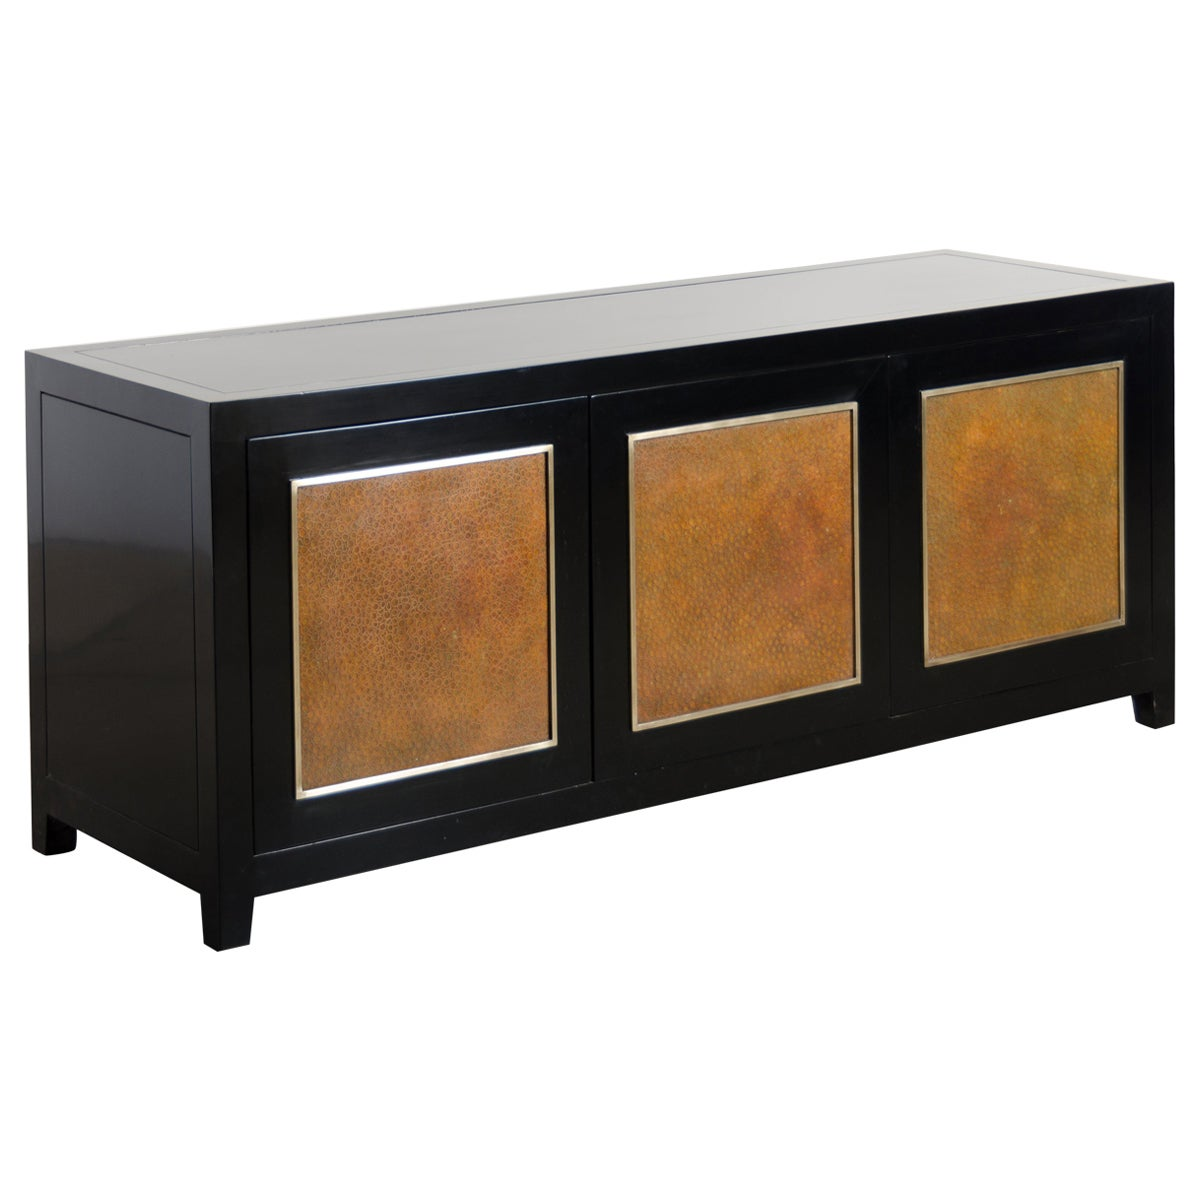 Low Cabinet with Amber Shargreen Cloisonné Panel by Robert Kuo, Limited Edition